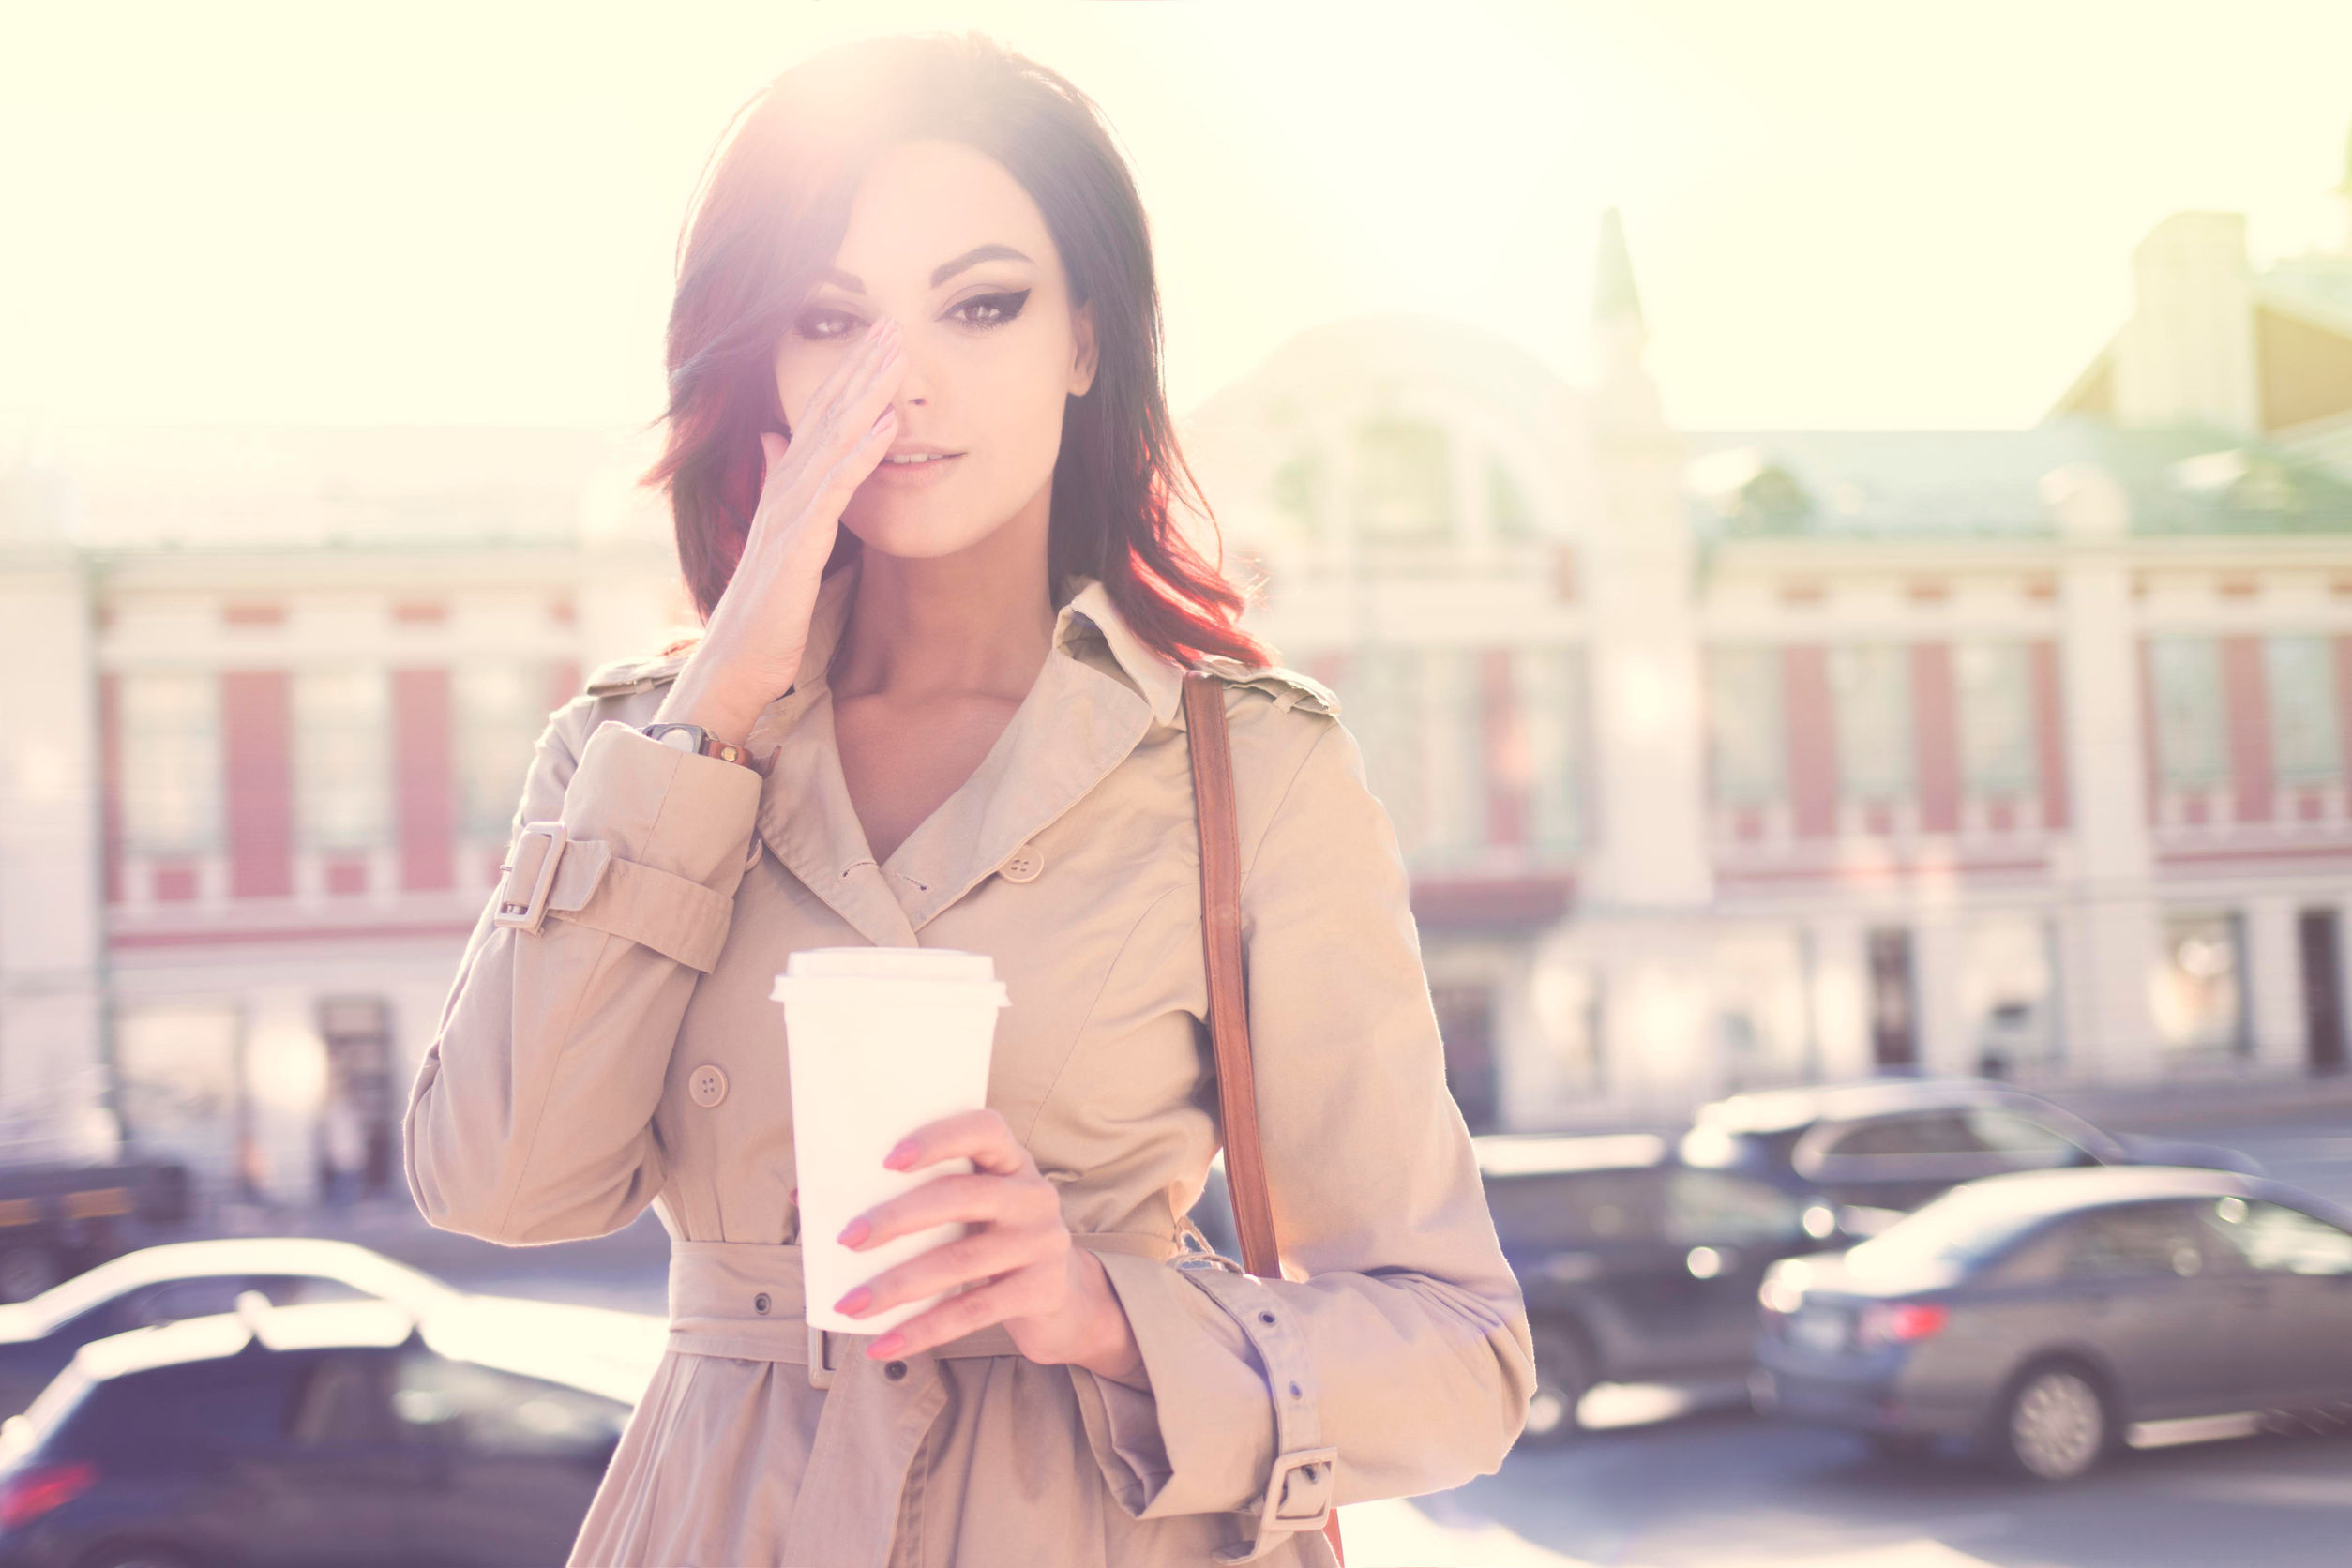 41237201 - beautiful young woman in a modern trench coat, holding a disposable takeaway cup and standing against urban city background.